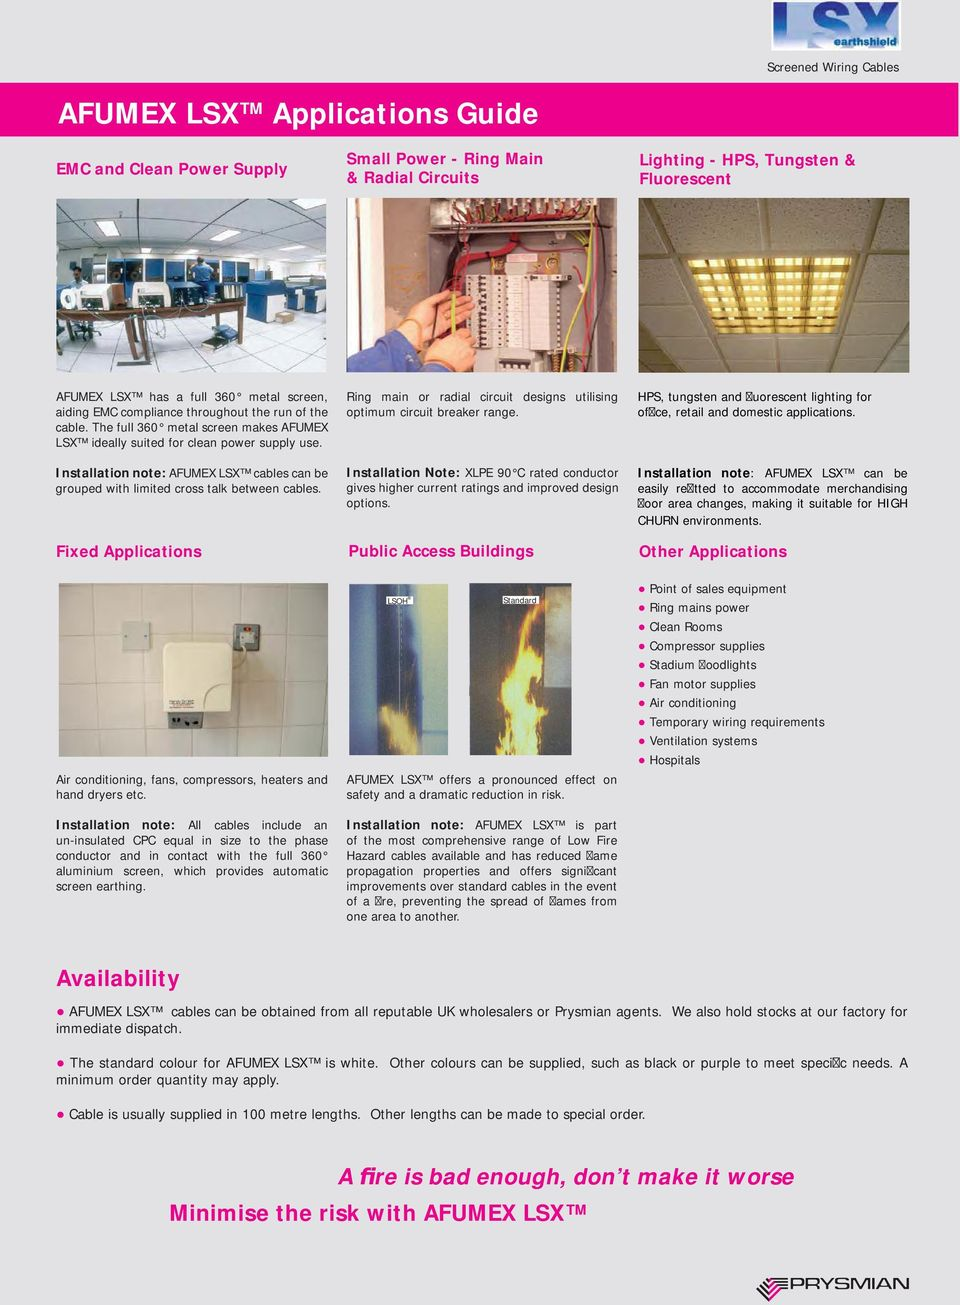 HPS, tungsten and uorescent lighting for of ce, retail and domestic applications. Installation note: AFUMEX LSX cables can be grouped with limited cross talk between cables.